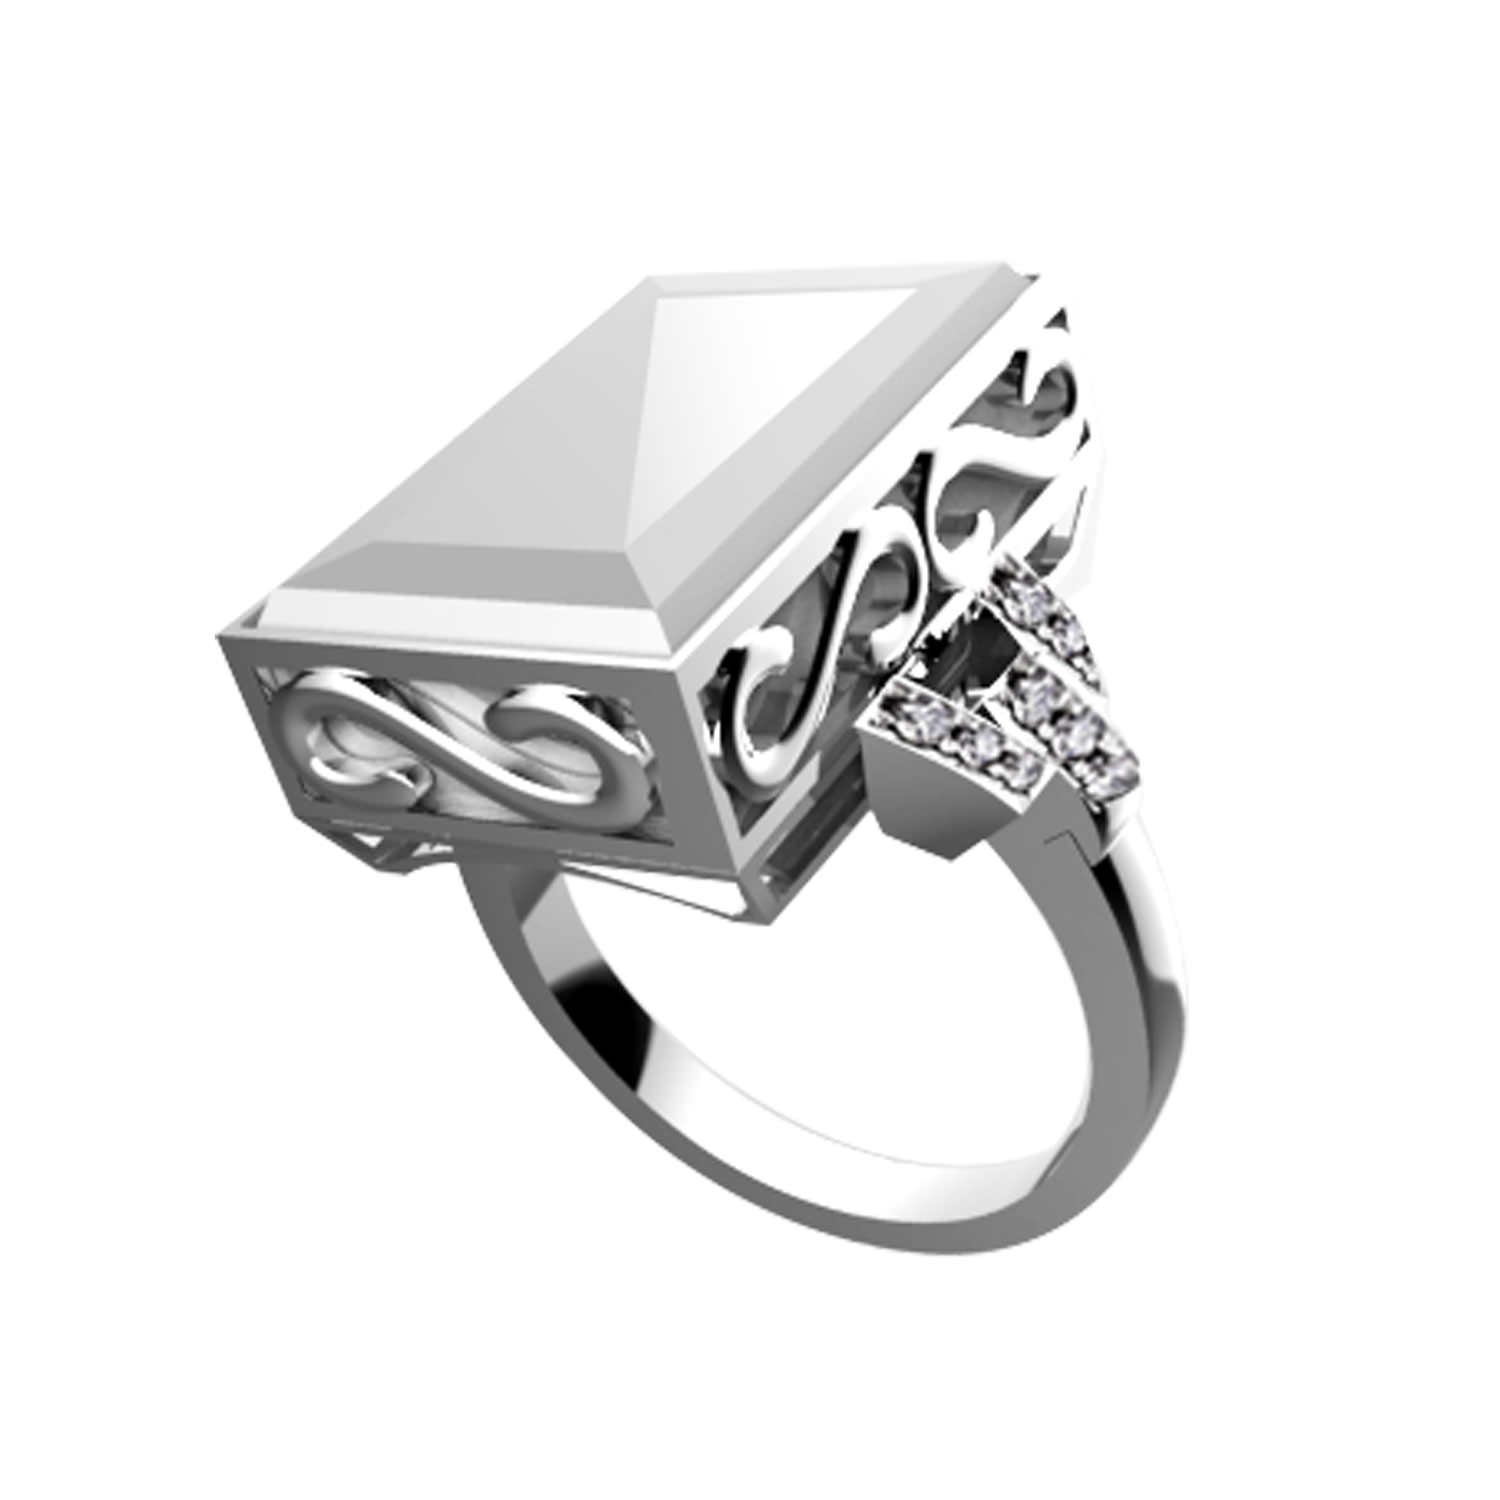 Ares Smart Ring